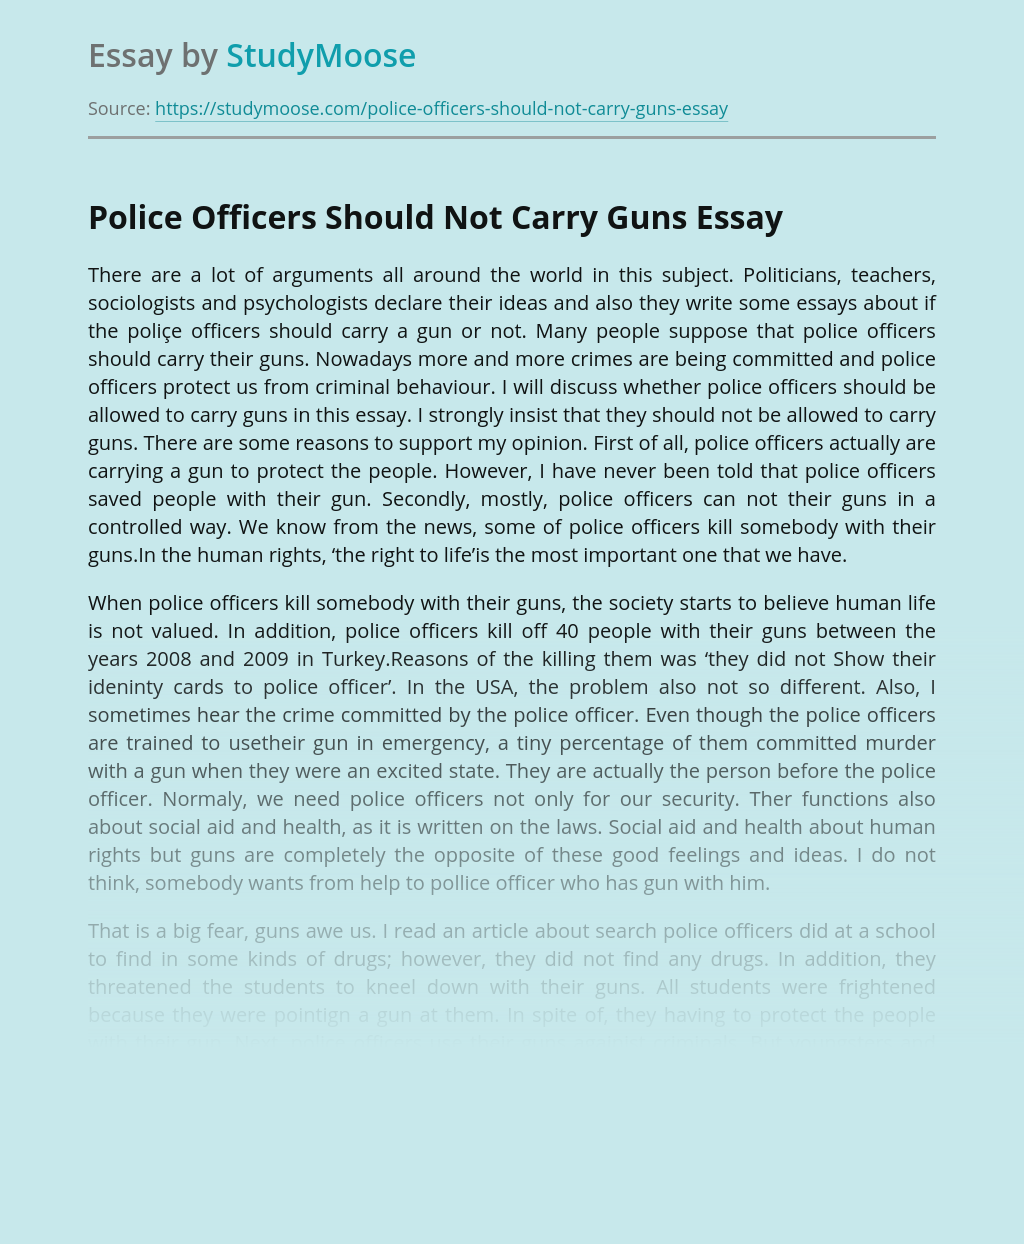 Police Officers Should Not Carry Guns